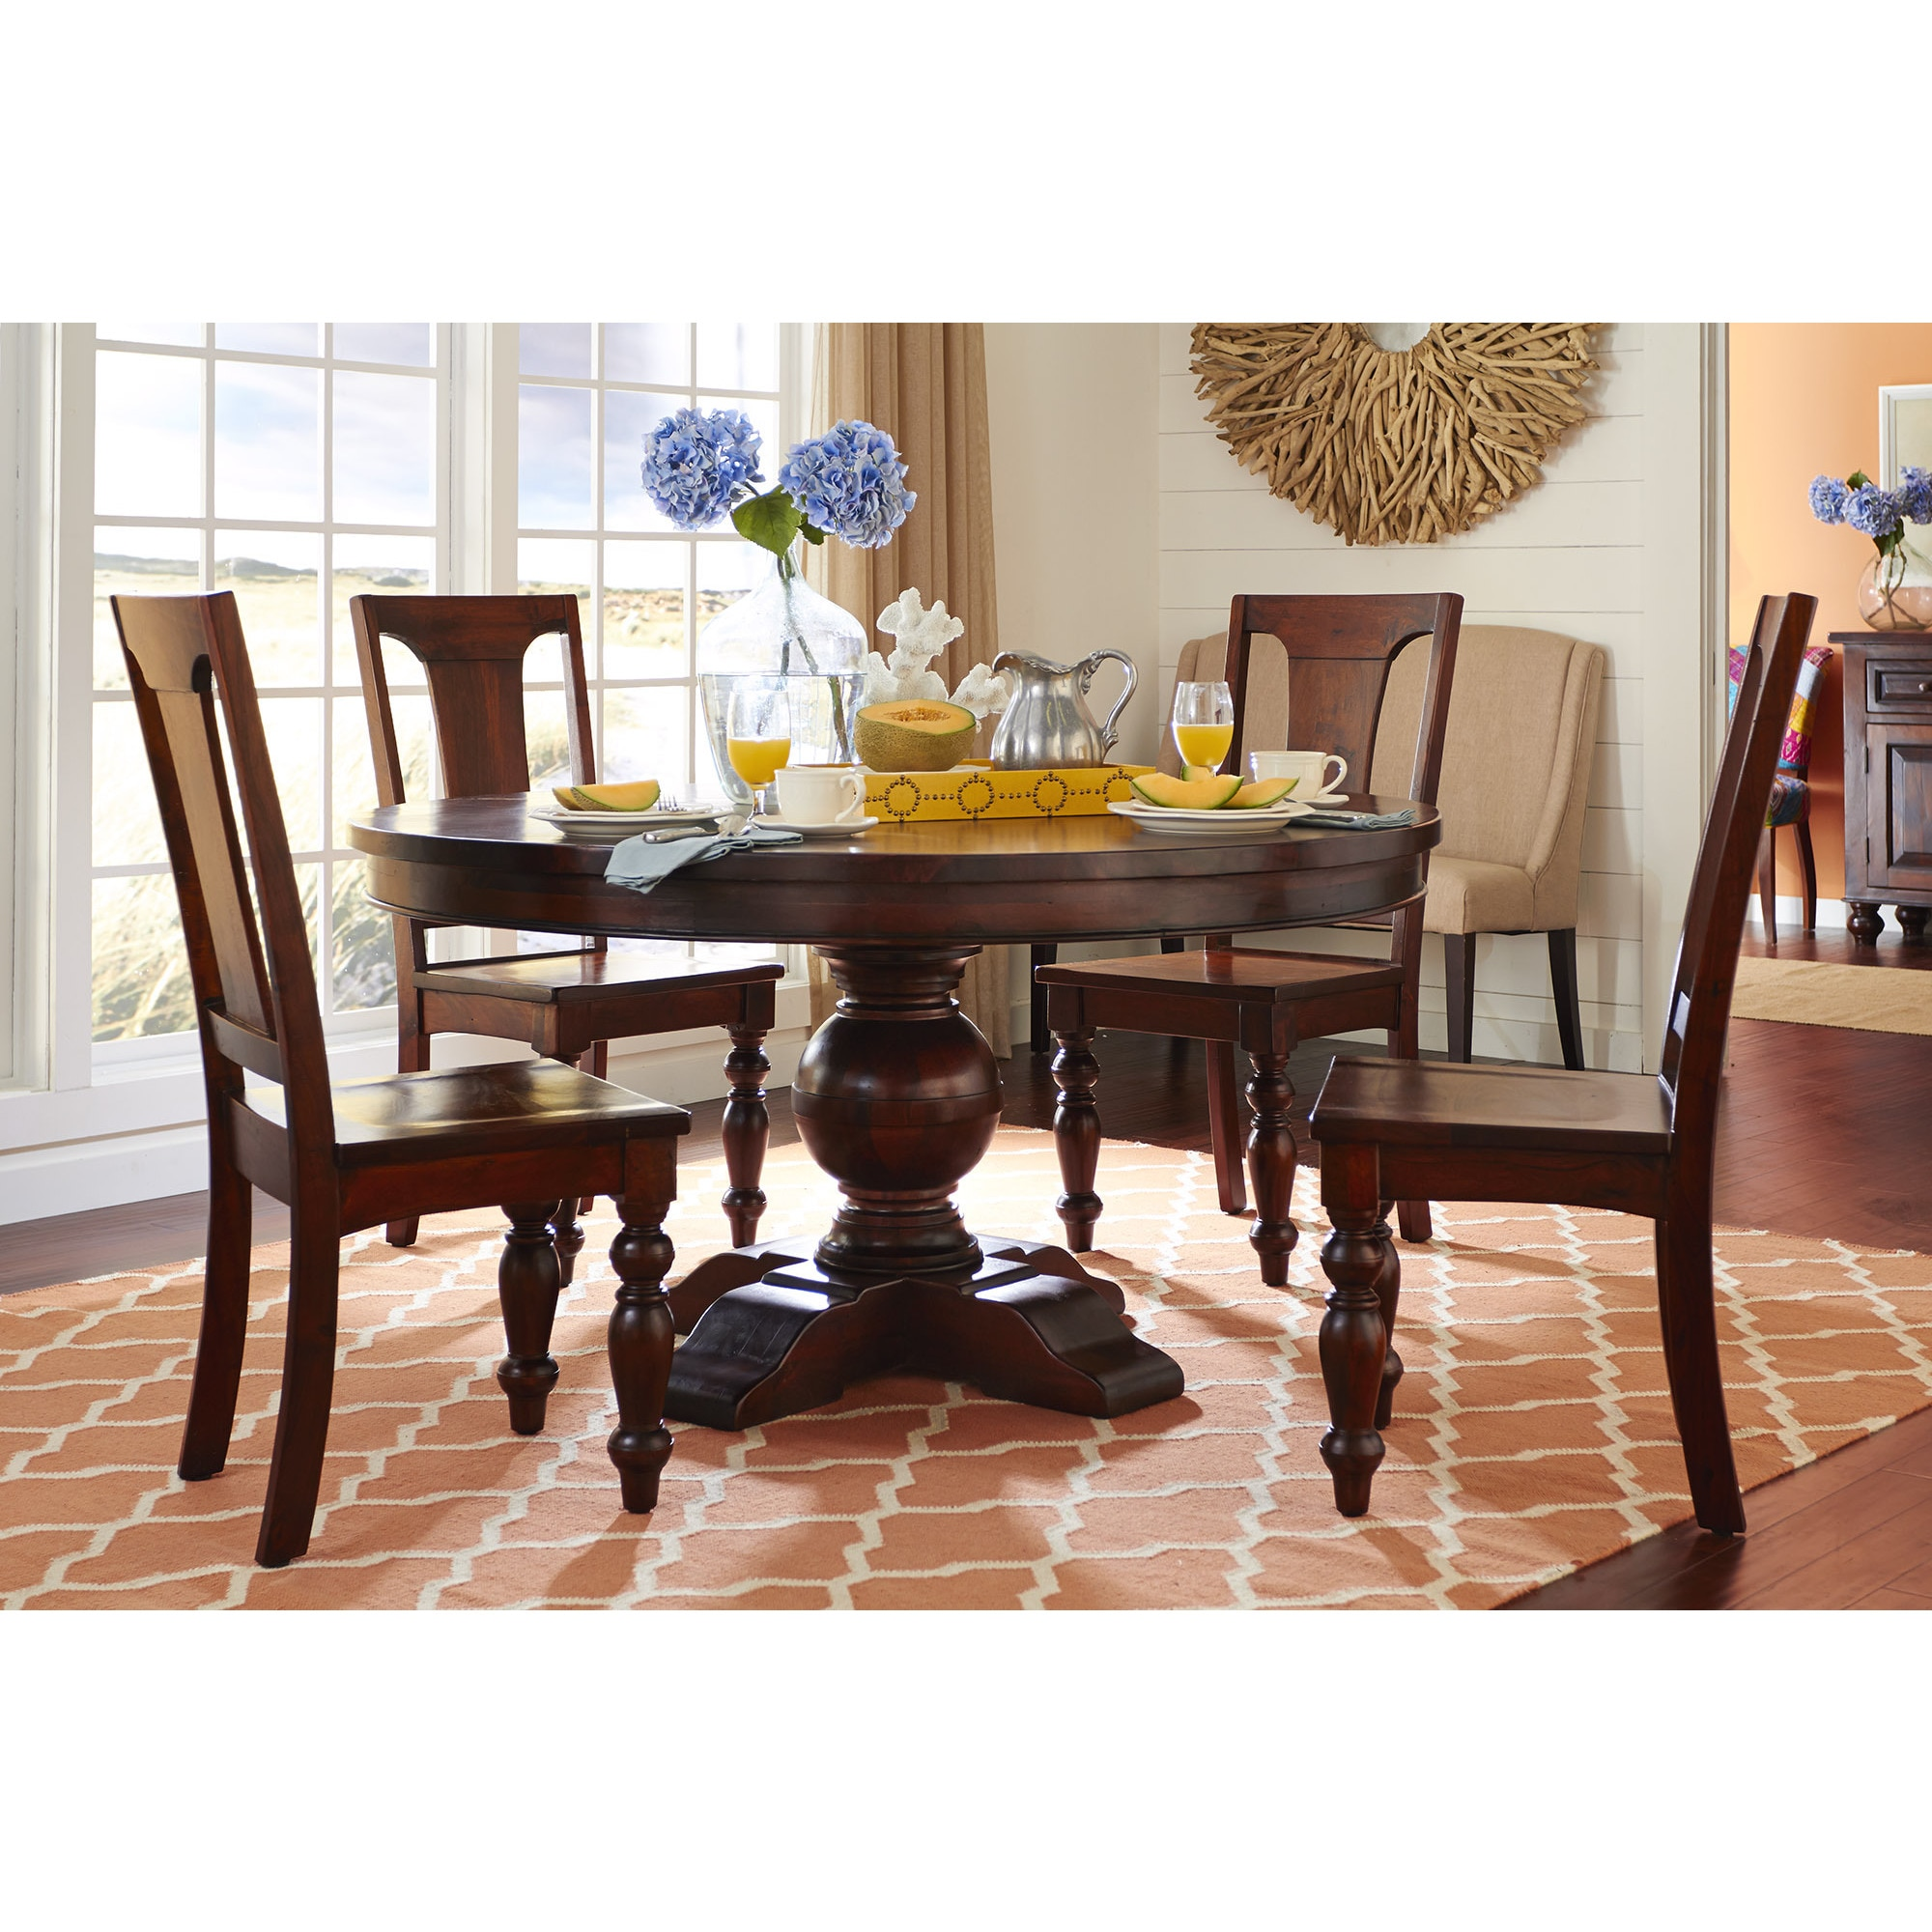 Copper Grove Arneburg Mango Wood Round Dining Table